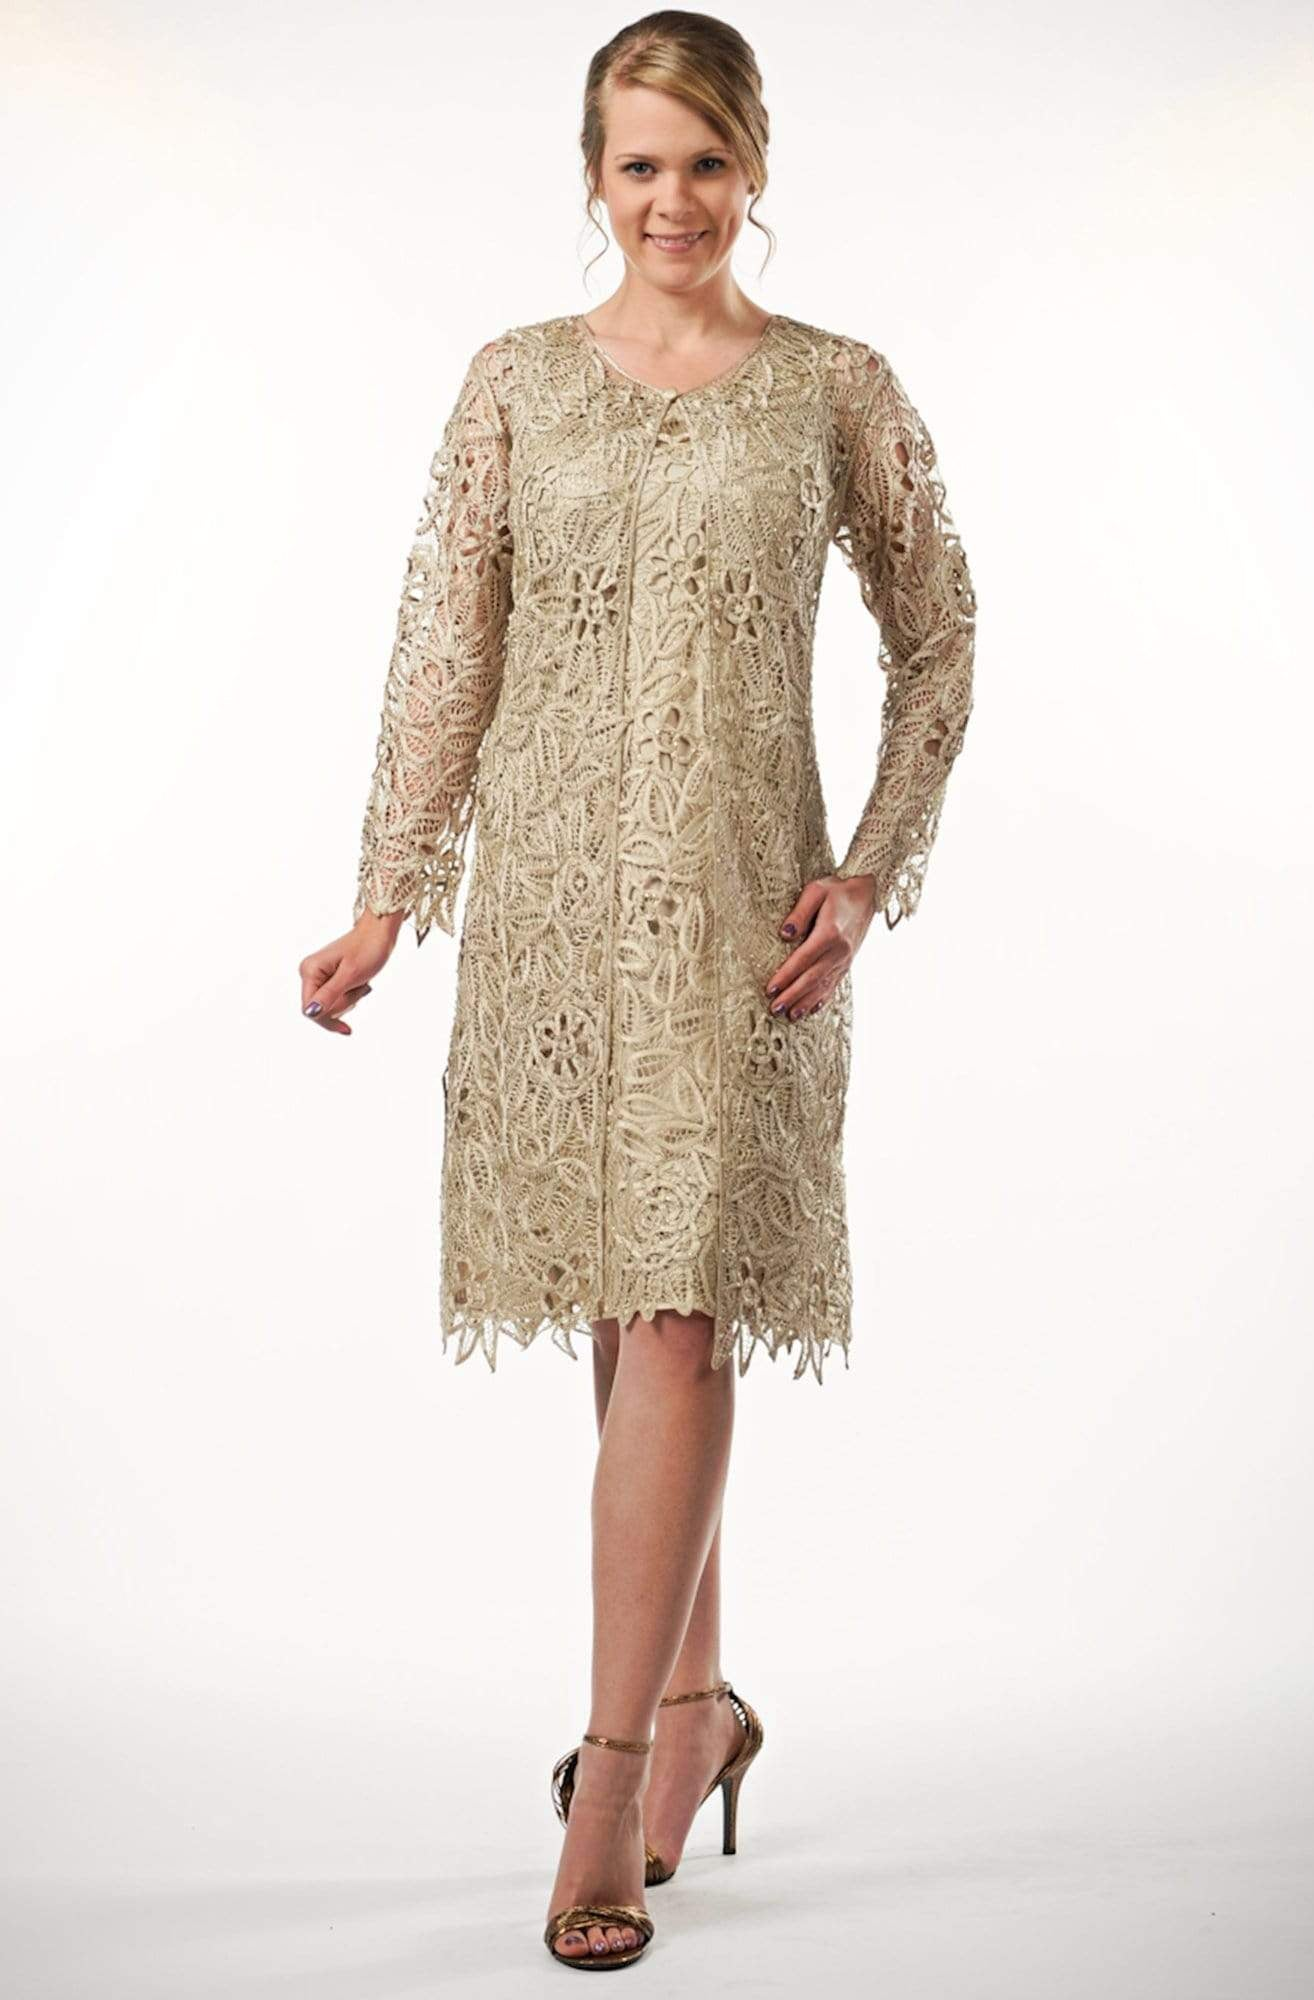 Soulmates - C88084 Beaded Short Duster Dress Set Mother of the Bride Dresses